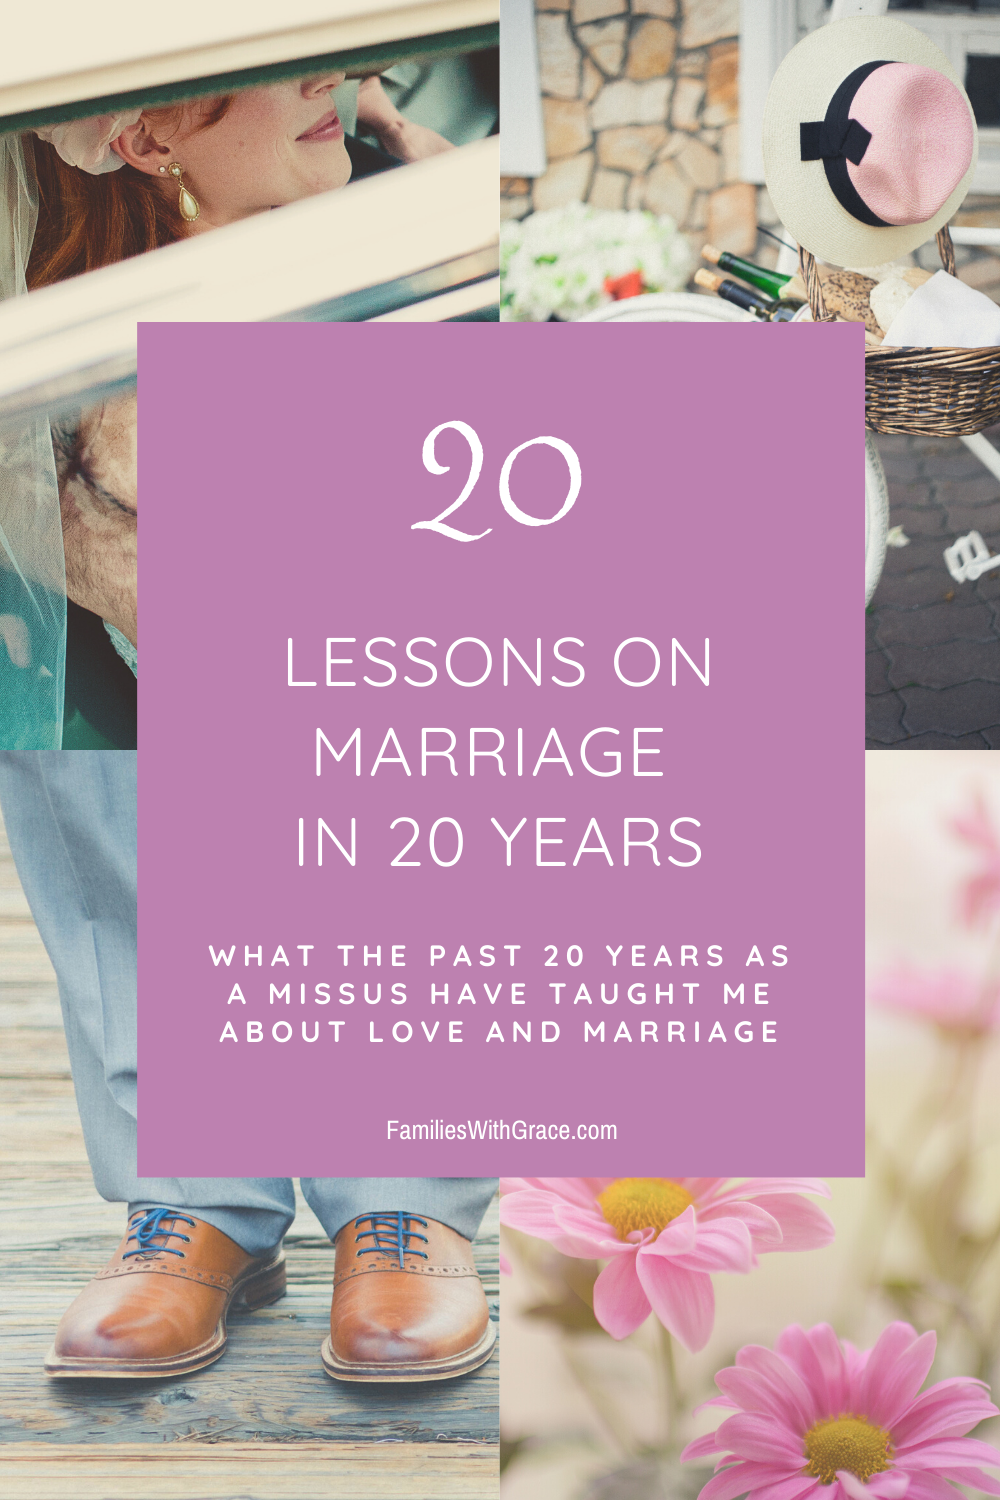 20 lessons on marriage in 20 years